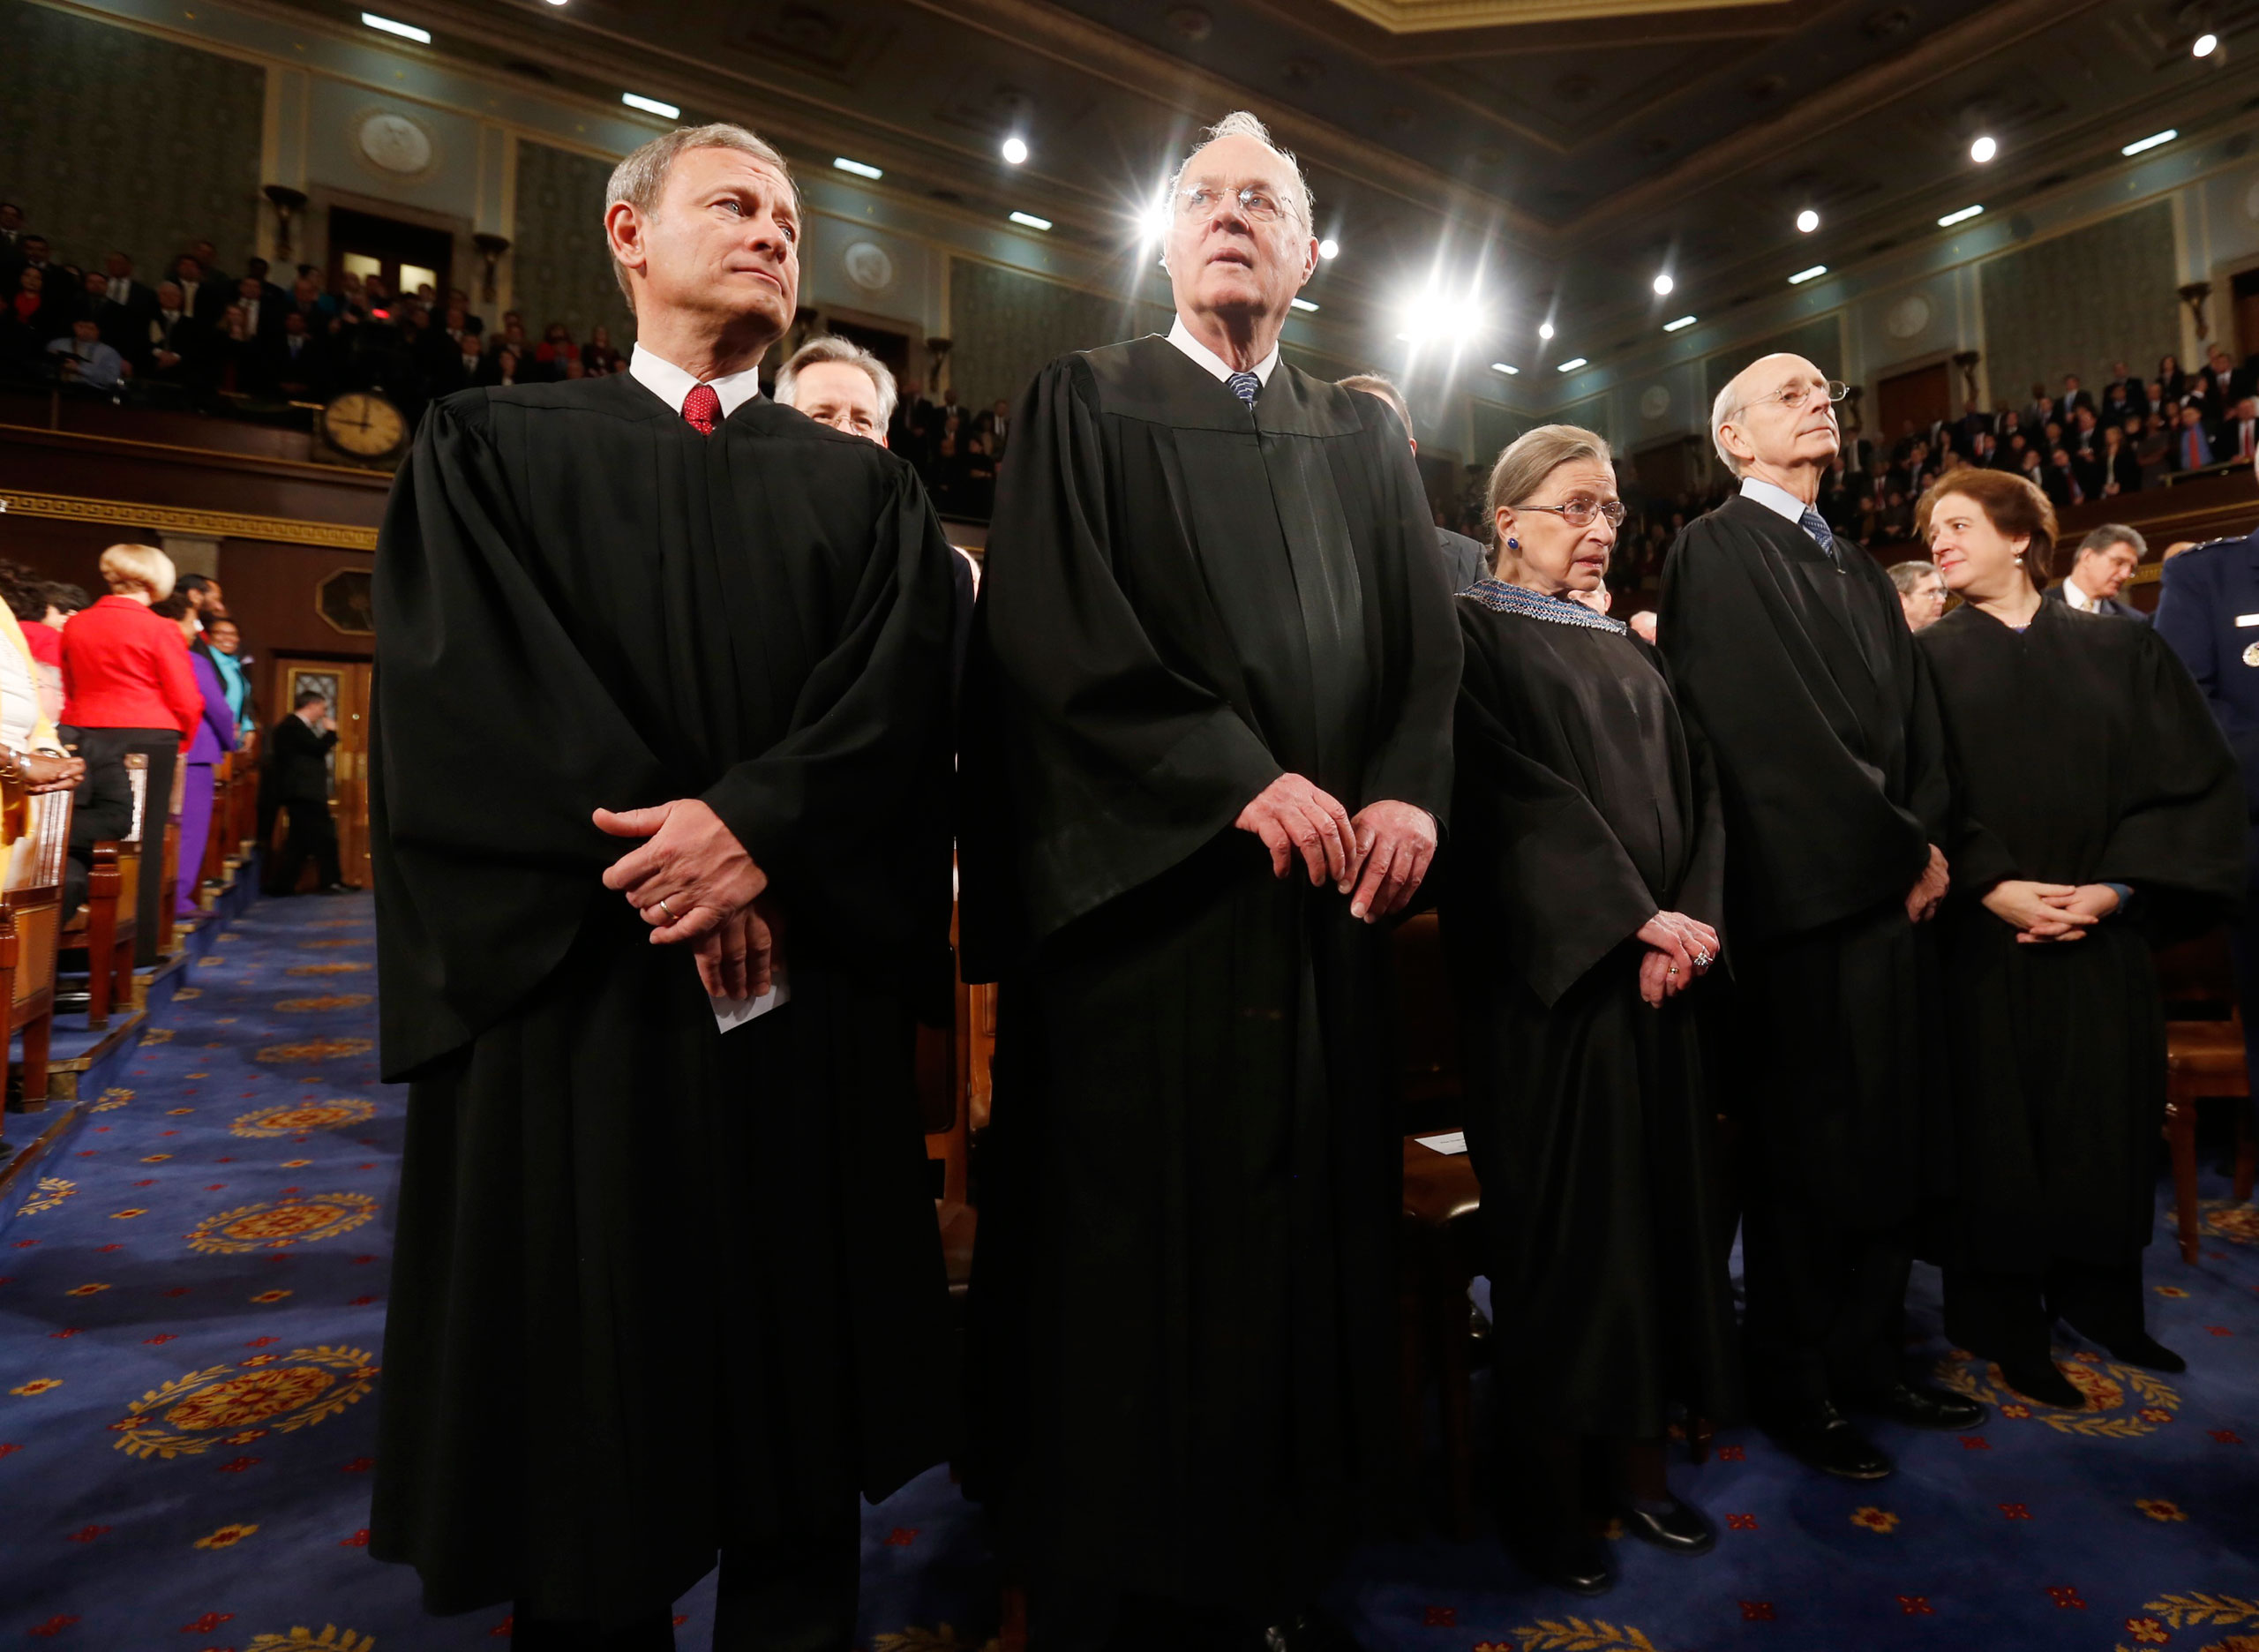 From left: U.S. Supreme Court Chief Justice John Roberts stands with fellow Justices Anthony Kennedy, Ruth Bader Ginsburg, Stephen Breyer and Elena Kagan prior to President Barack Obama's State of the Union speech on Capitol Hill in Washington, D.C. on  Jan. 28, 2014.